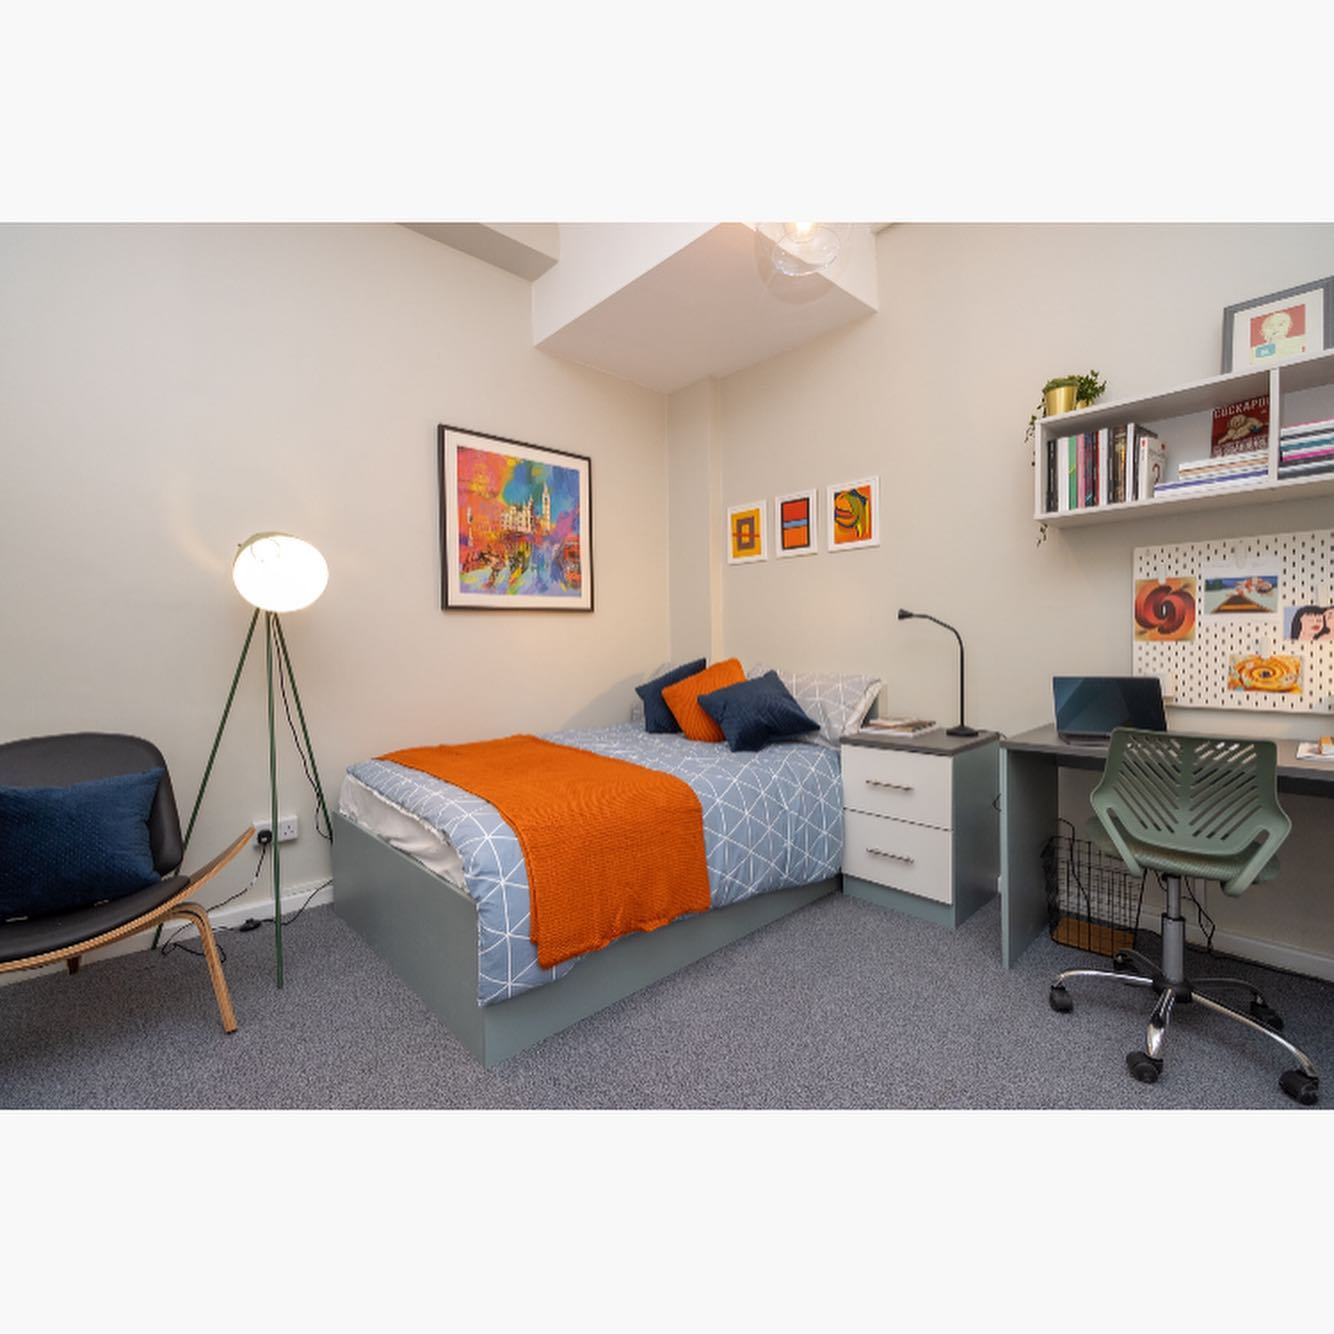 We still have availability on the below room types for 20/21. ️Standard Plus ️Classic ️Premium ️Premium Plus ️Deluxe Don't miss out on the room you want. Take yourself over to our website today and check us out or get in touch to arrange a video tour! louisehouse@crm-students.com . .